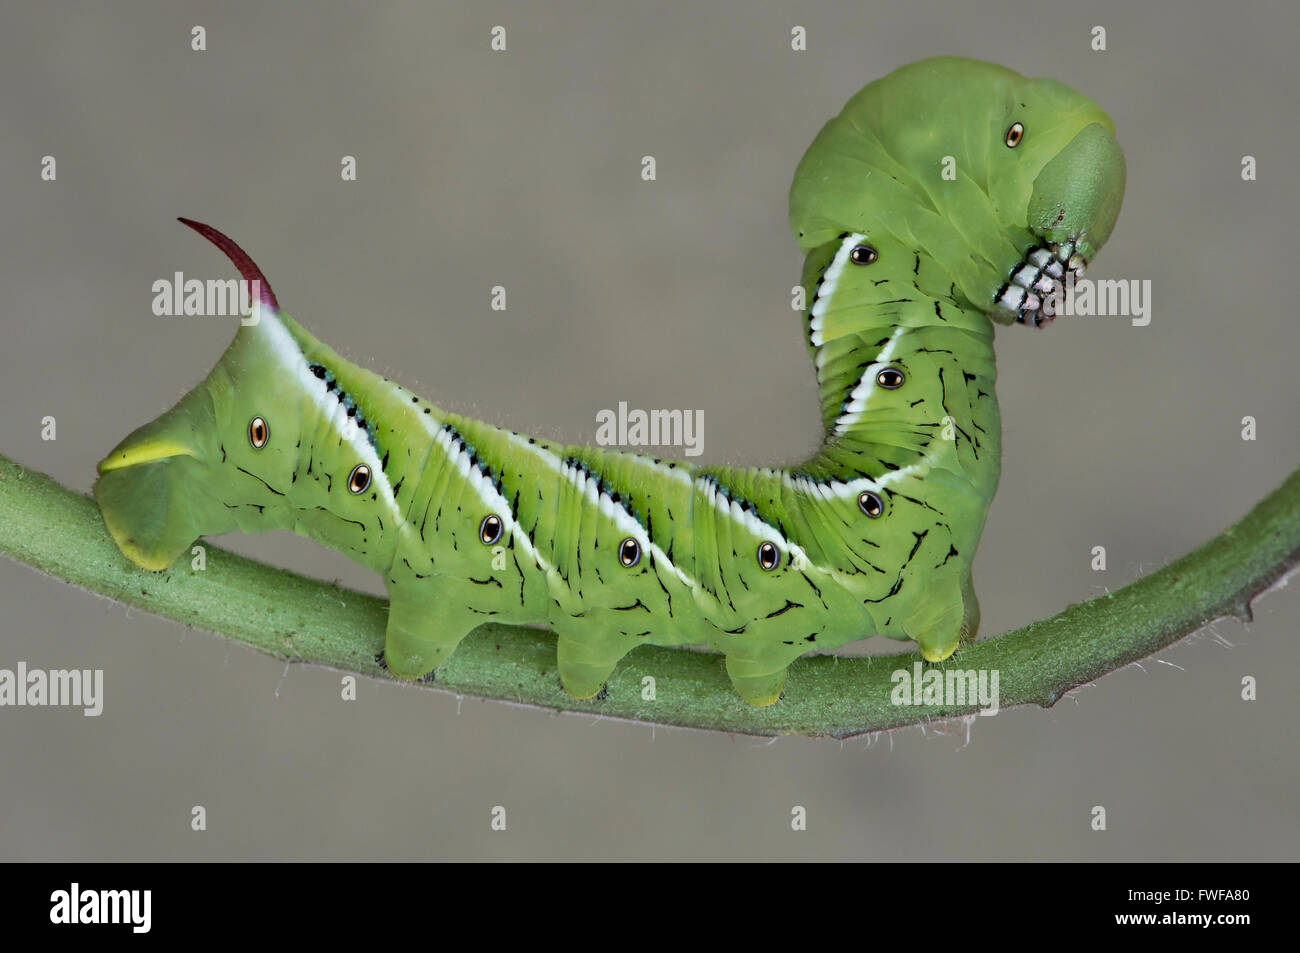 Tomato Hornworm Moth or Five-Spotted Hawkmoth caterpillar, larvae, (Manduca quinquemaculata)  on Tomato plant, Eastern - Stock Image